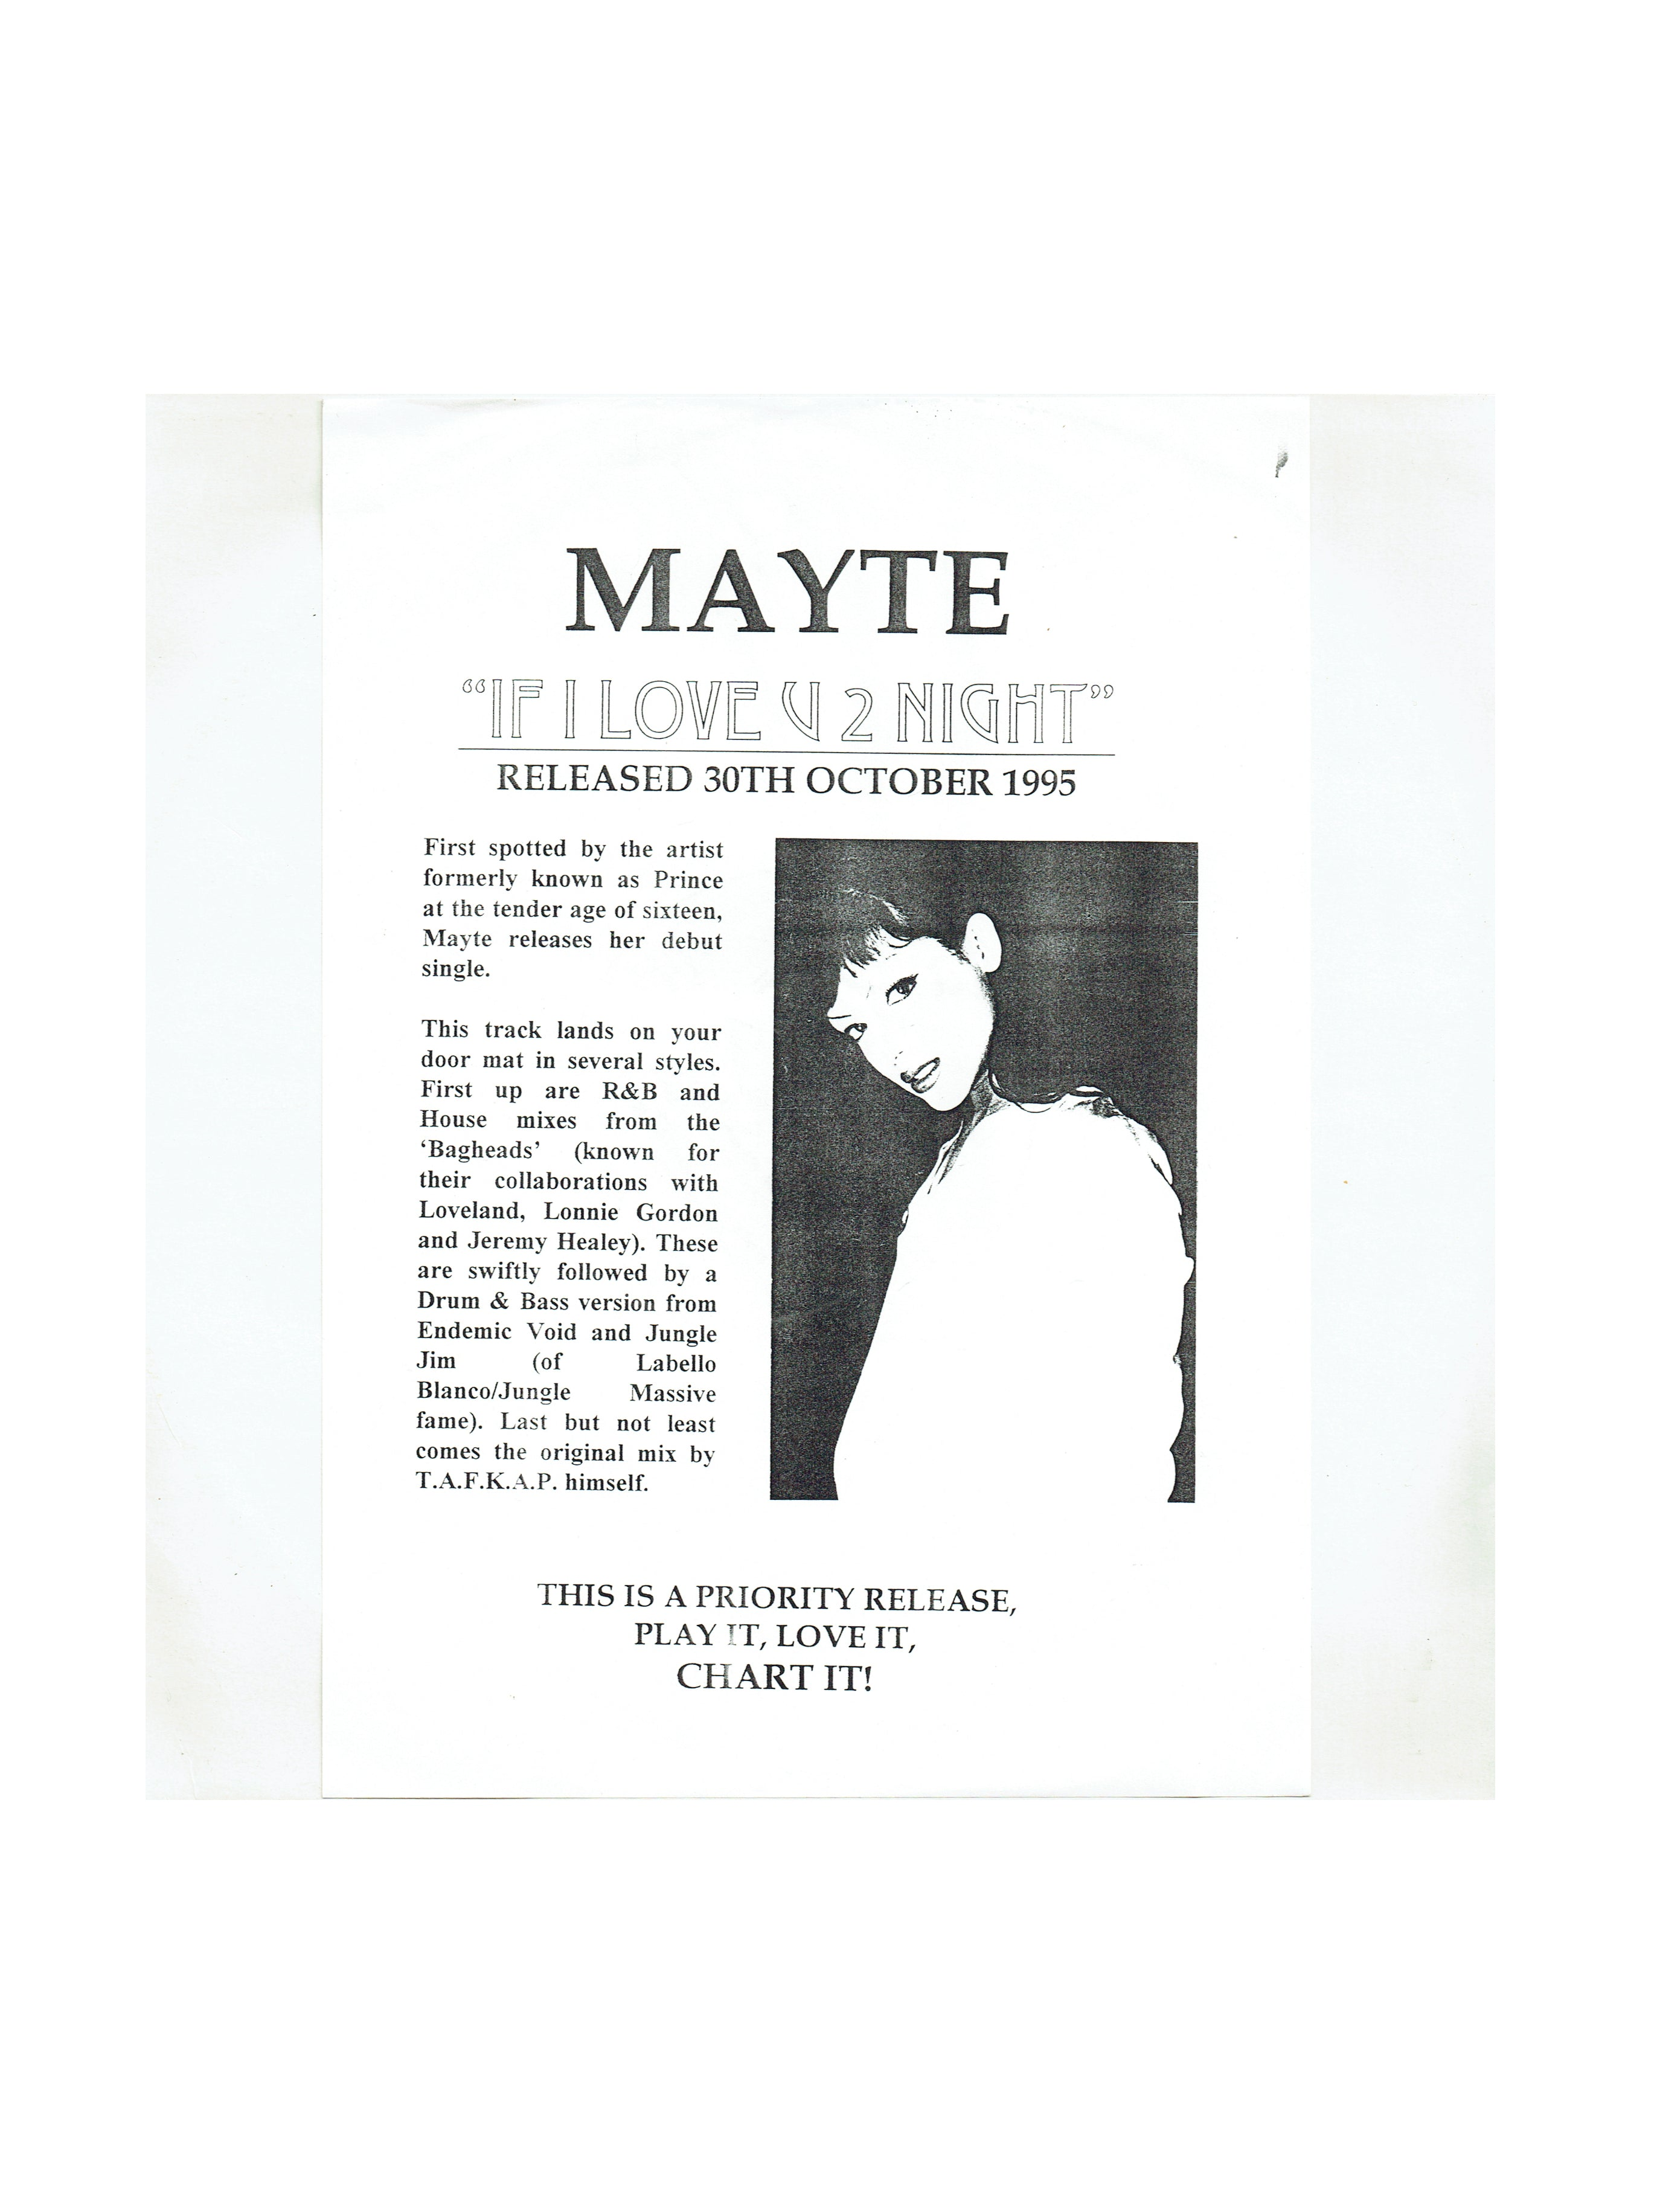 Mayte If I Love U 2 Nite Promotional 12 Inch Vinyl Single 1995 Release Prince DJ Only